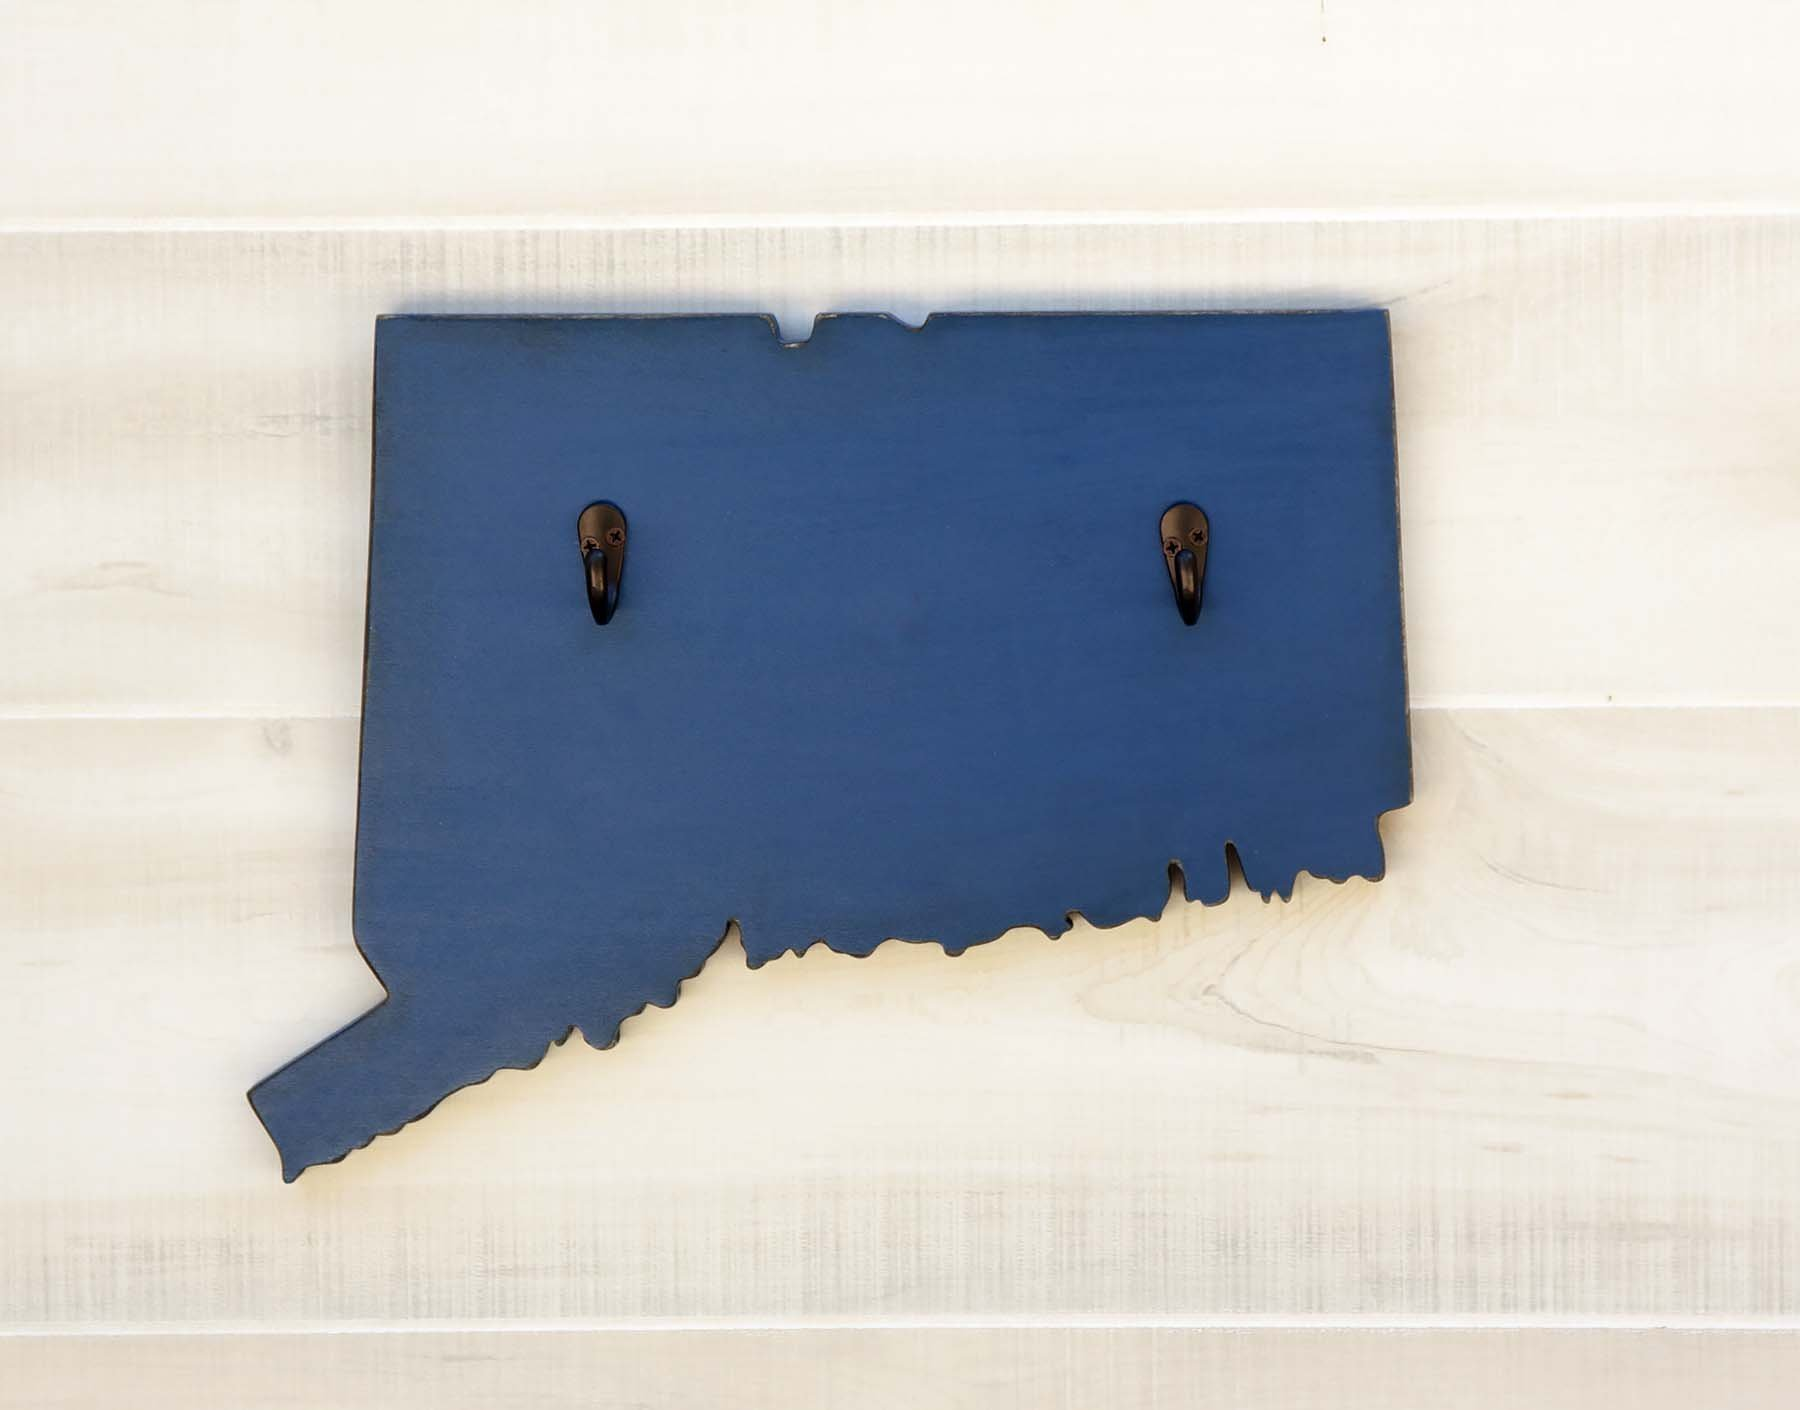 Connecticut State Map Shape Key Hook Home Organizer. Additional US States A-K available. 20 Paint Colors. 3 Key Hook Colors. Solid ¾ wood cutout.